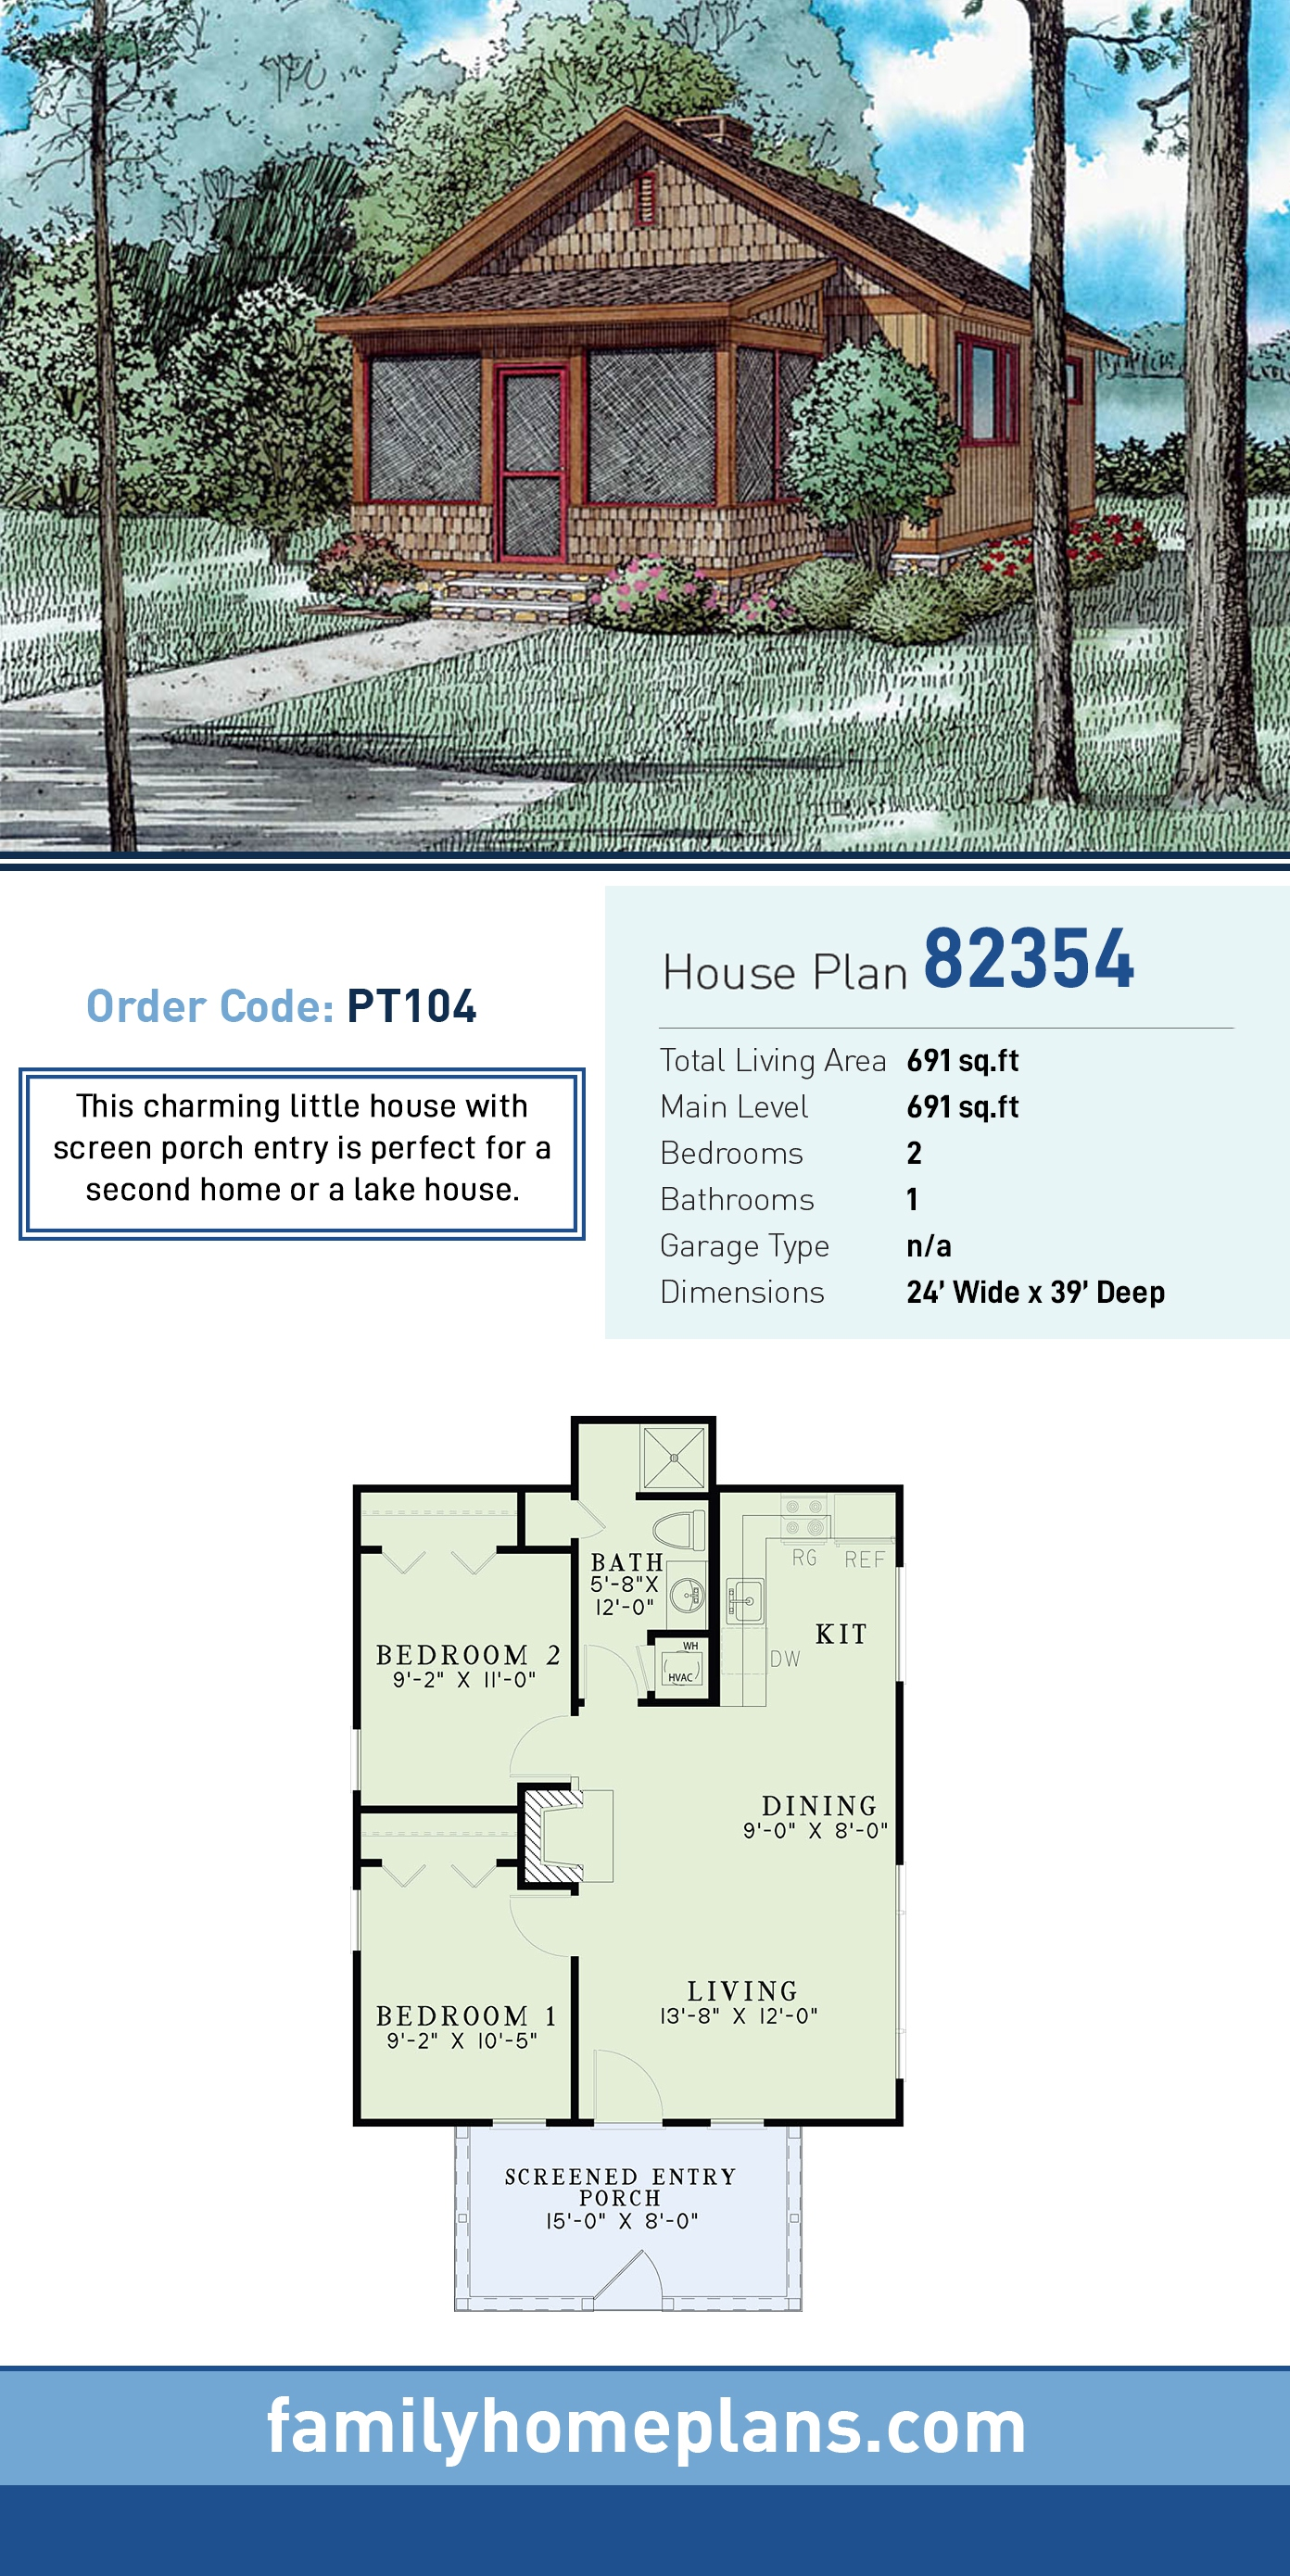 Cabin, Country, Craftsman House Plan 82354 with 2 Beds, 1 Baths